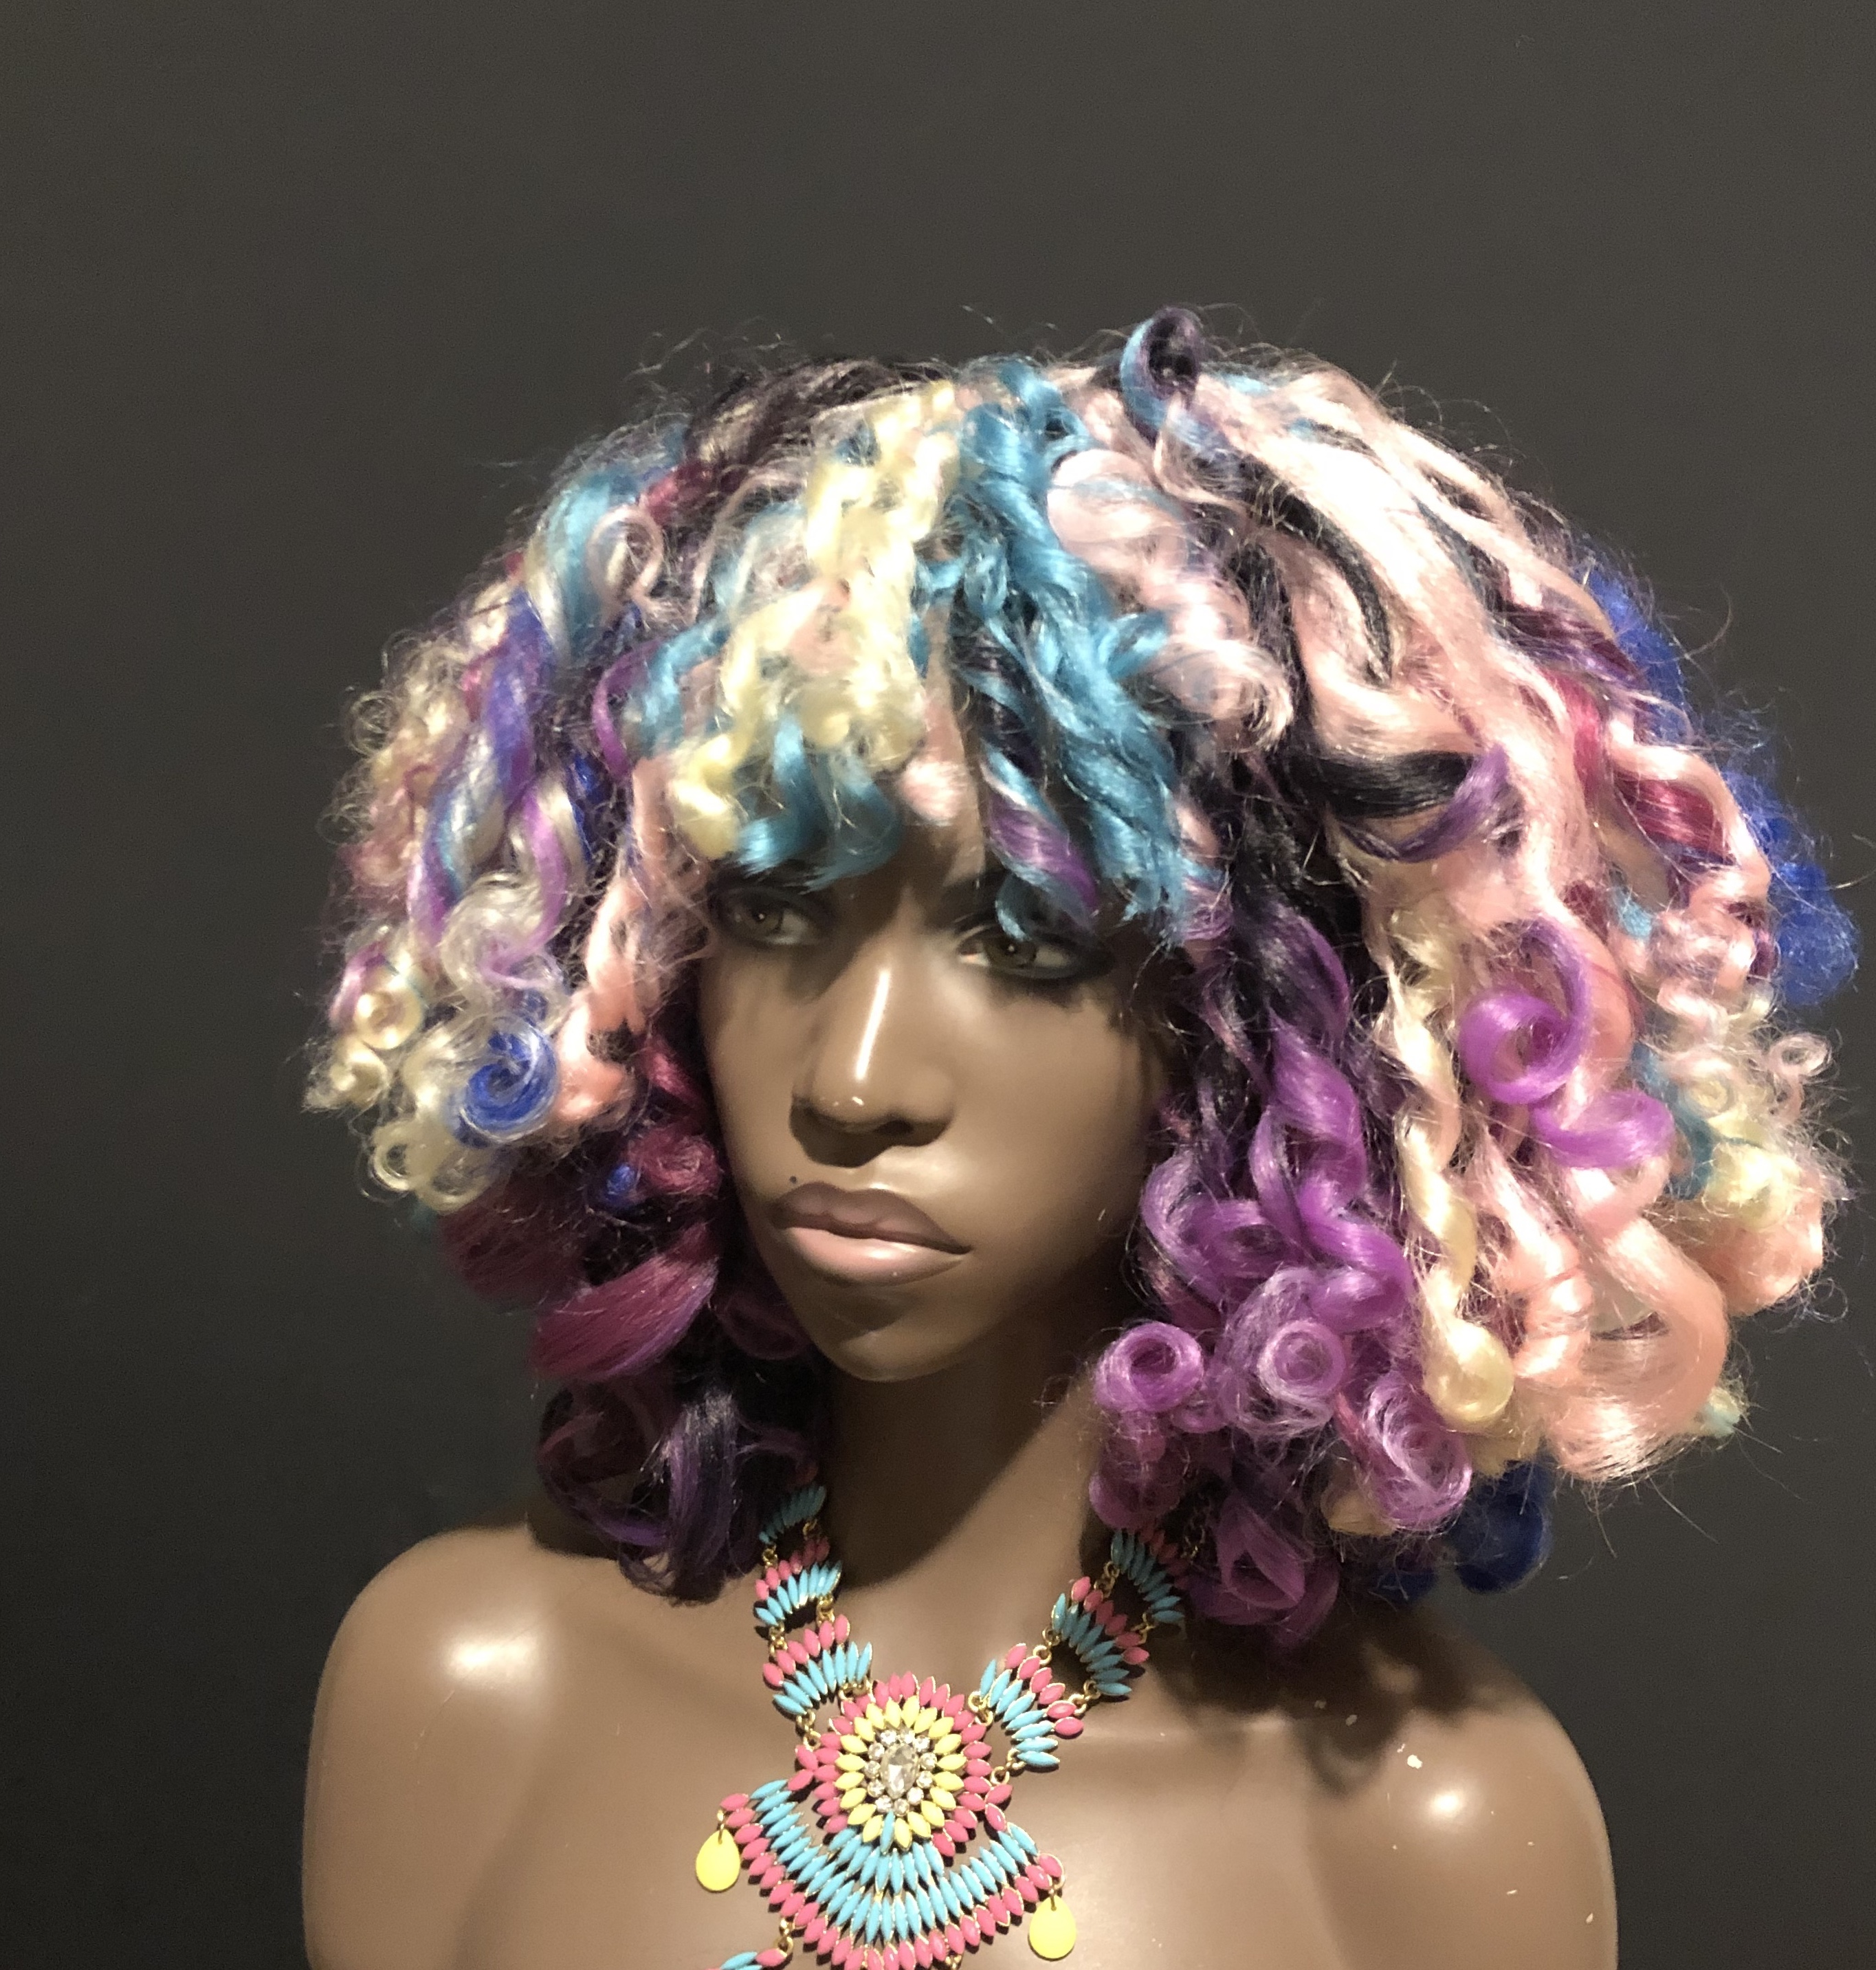 Unicorn Neon Curls Wig Unit Kinky Curly Natural Hair Texture by Essence Wigs